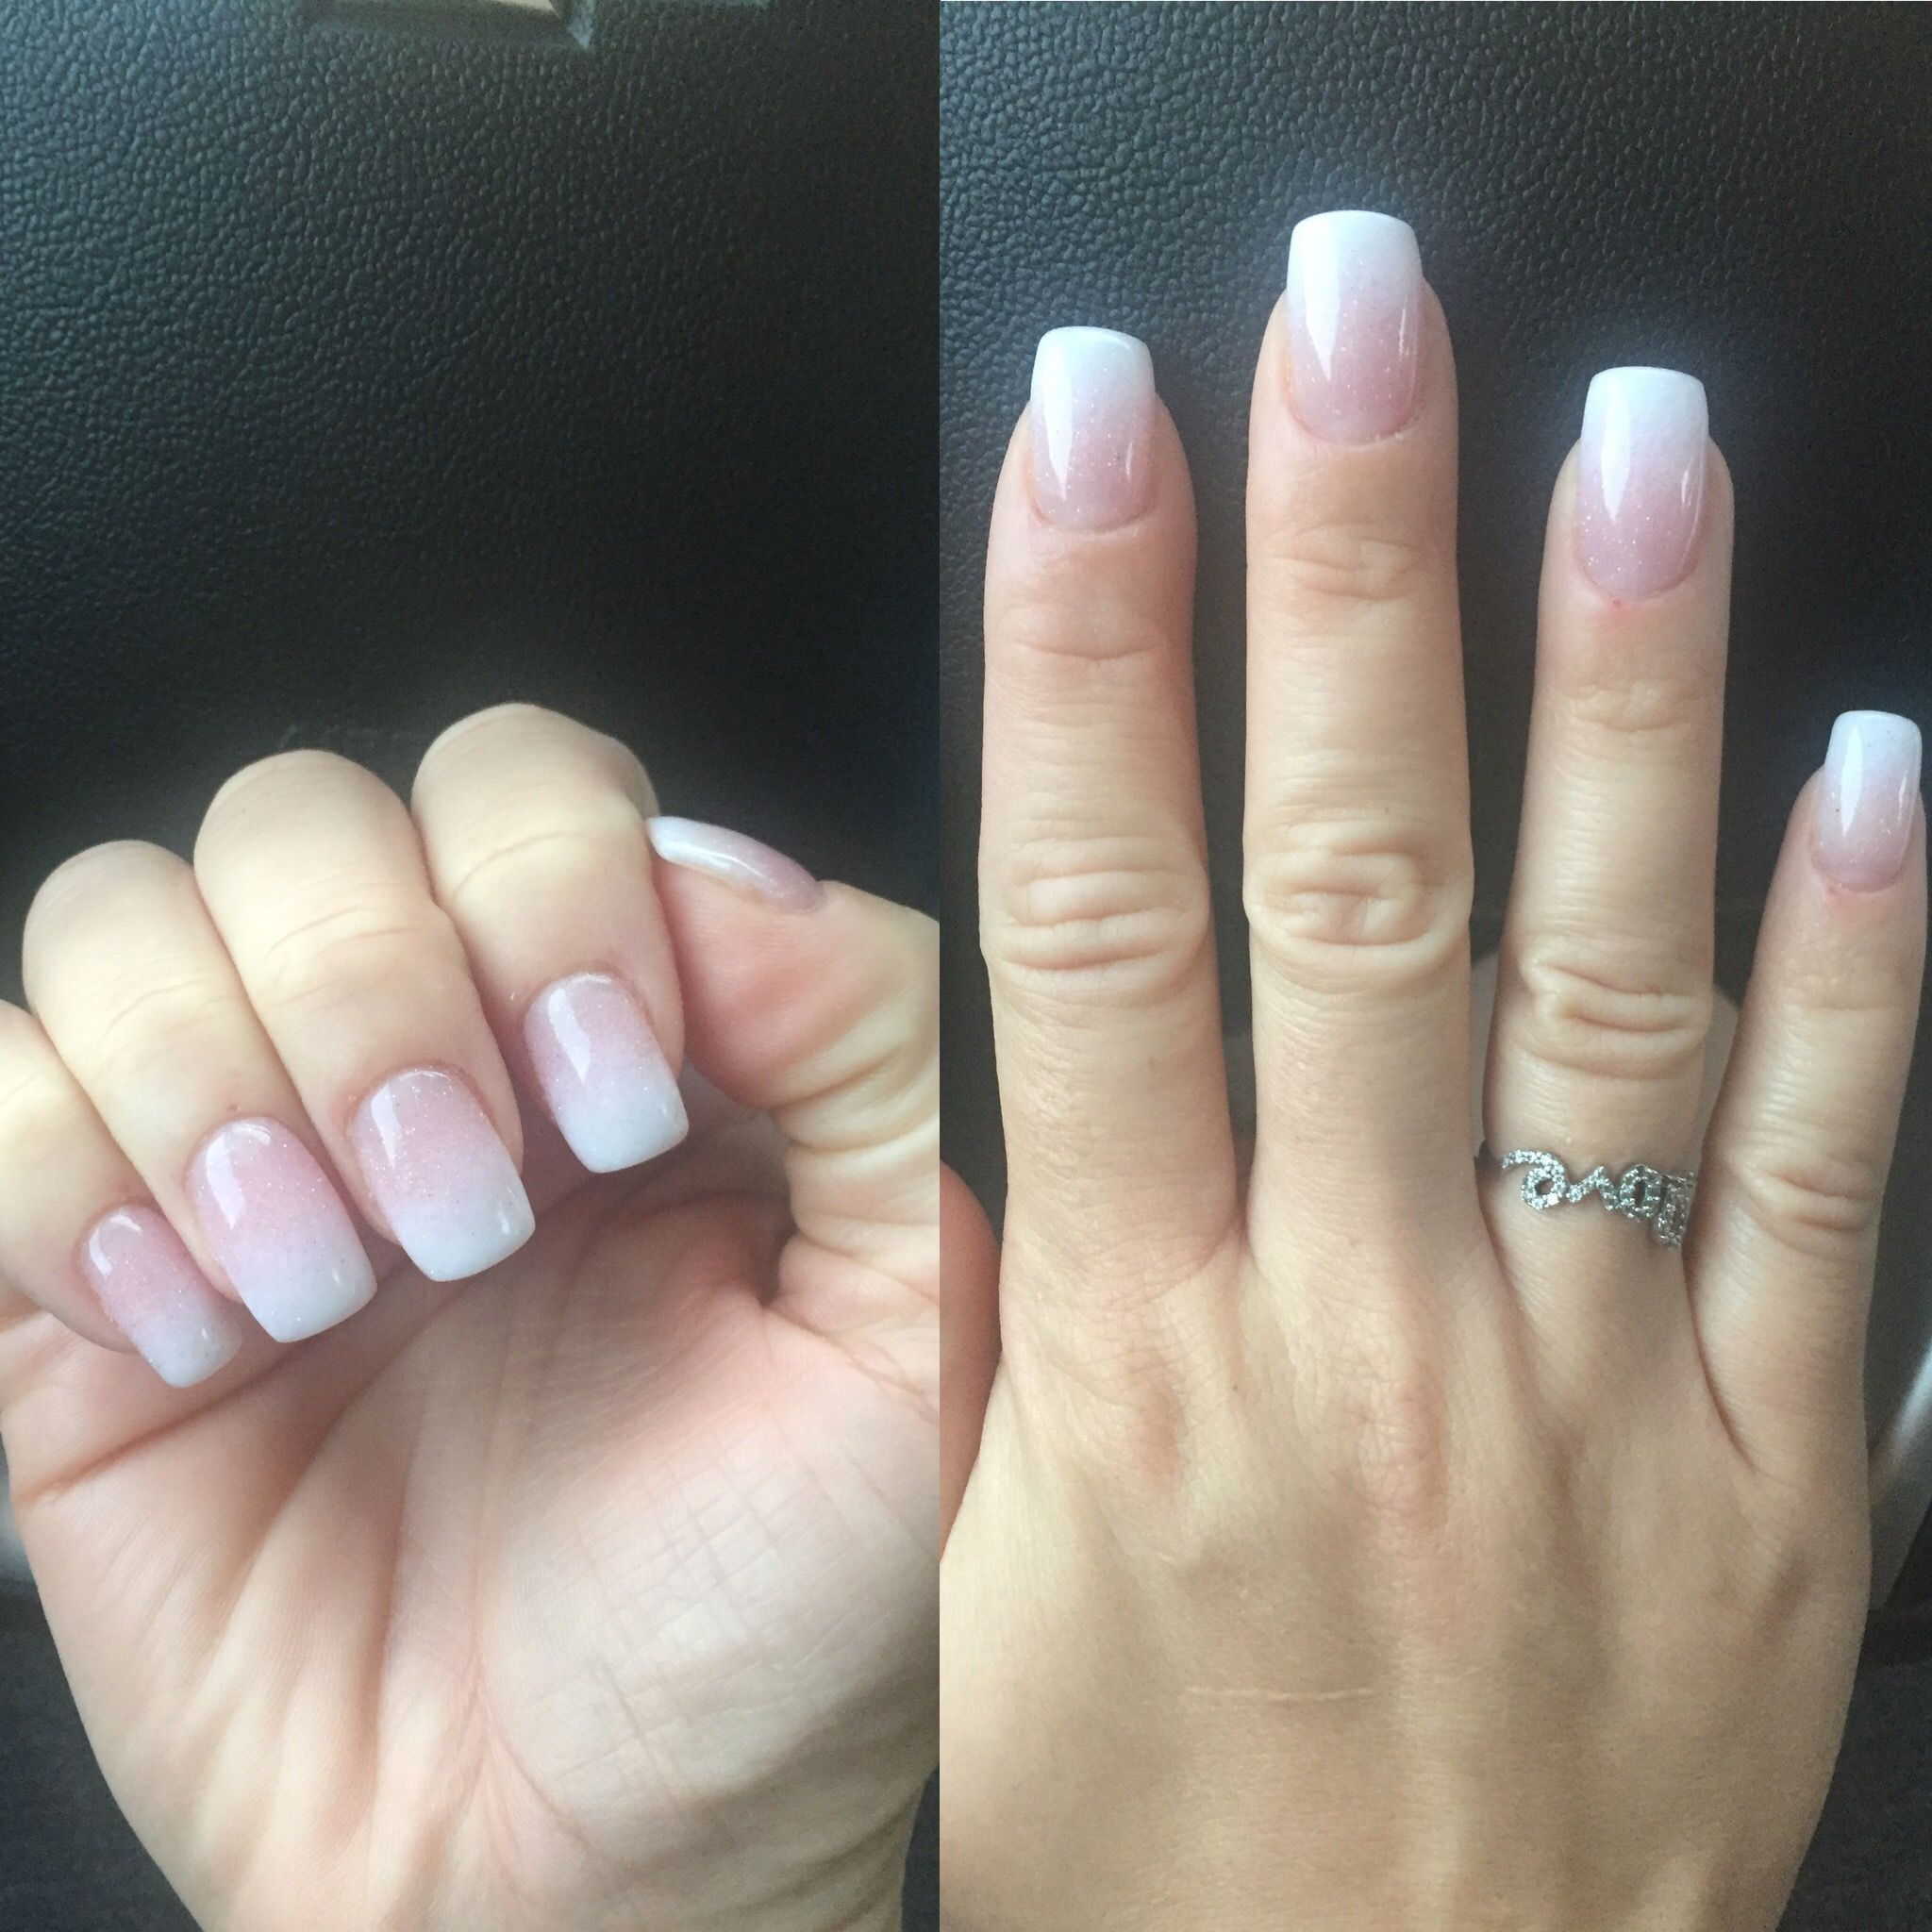 SNS Ombr pink to white | My SNS Nails | Pinterest | Nails ...